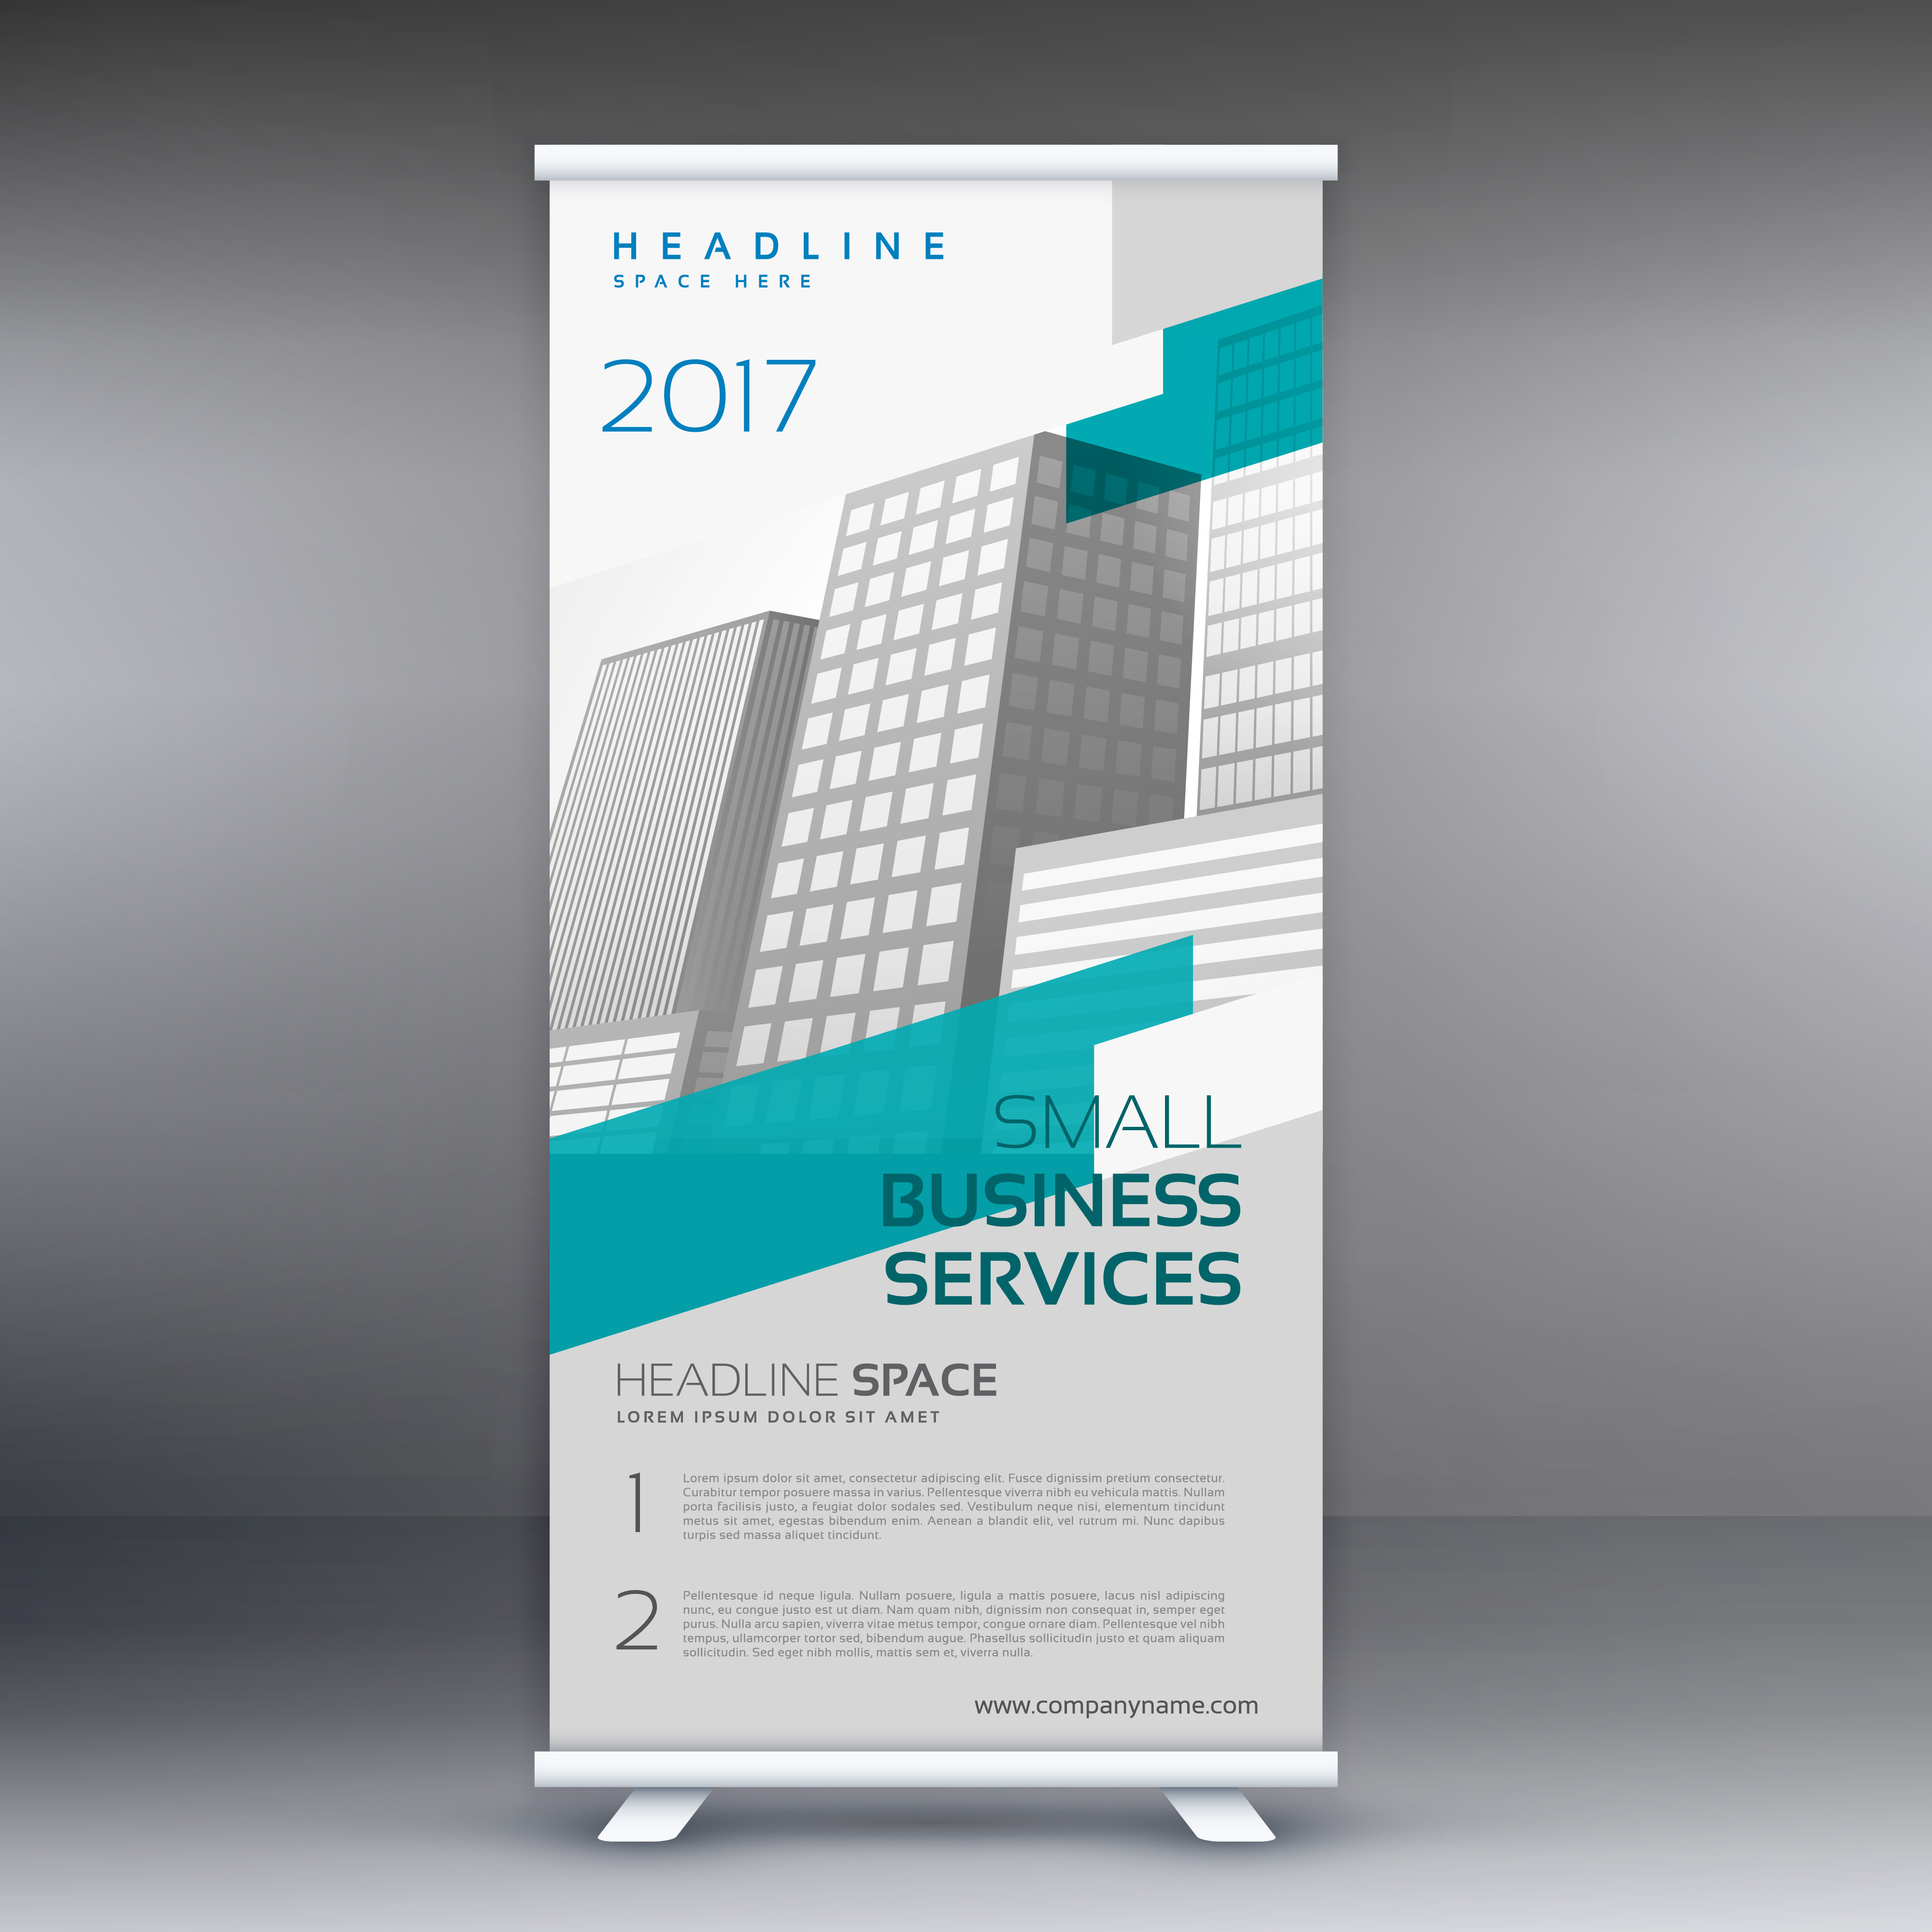 Roll Up Banner Standee Design Template In Gray And Blue Color Free Vector Art Stock Graphics Images